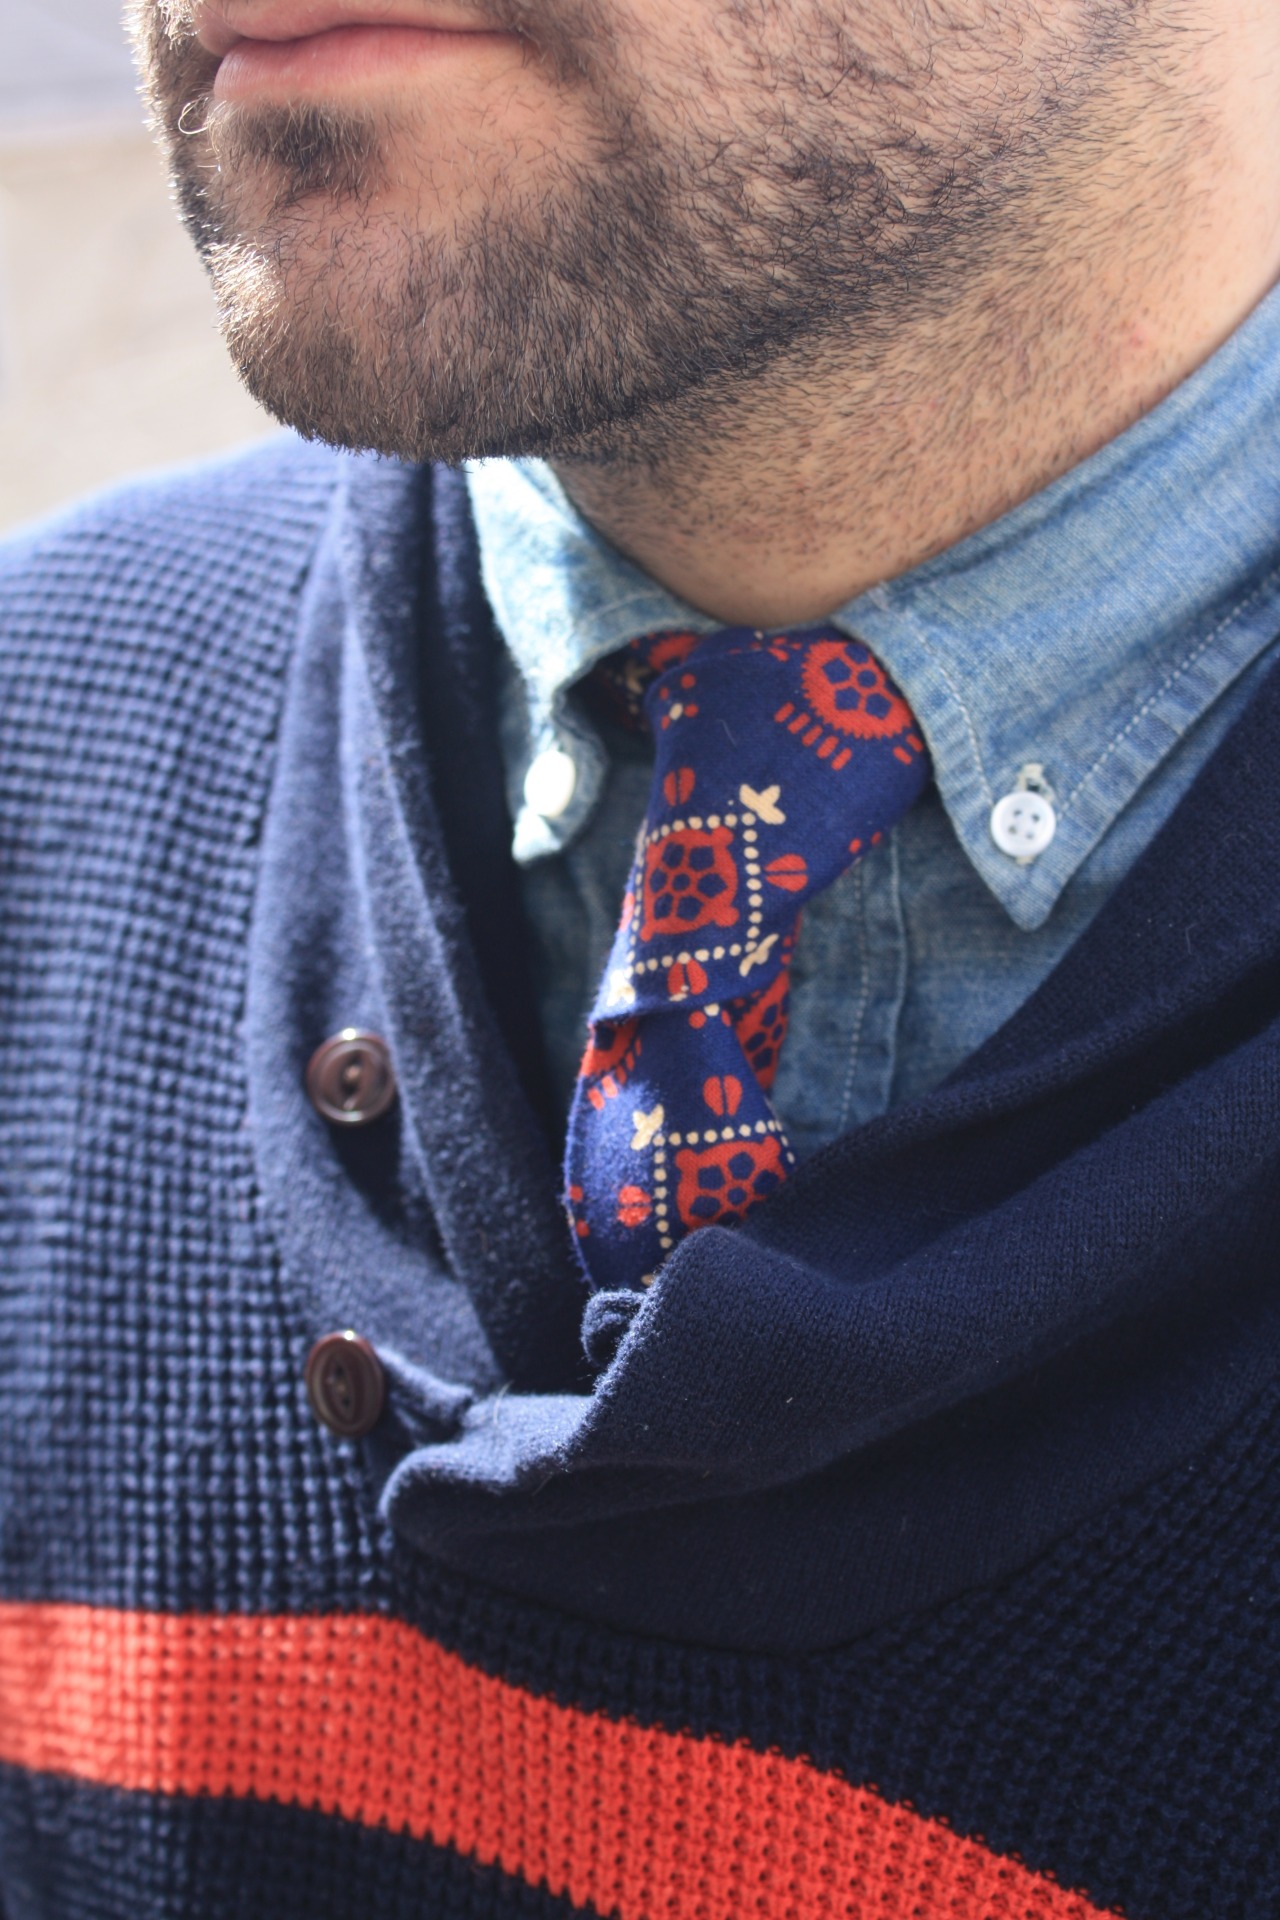 I like wearing patterned ties underneath my sweaters. They're a simple way to layer. This  cotton tie  was made in the USA by a Brooklyn based clothing company called Fischer .